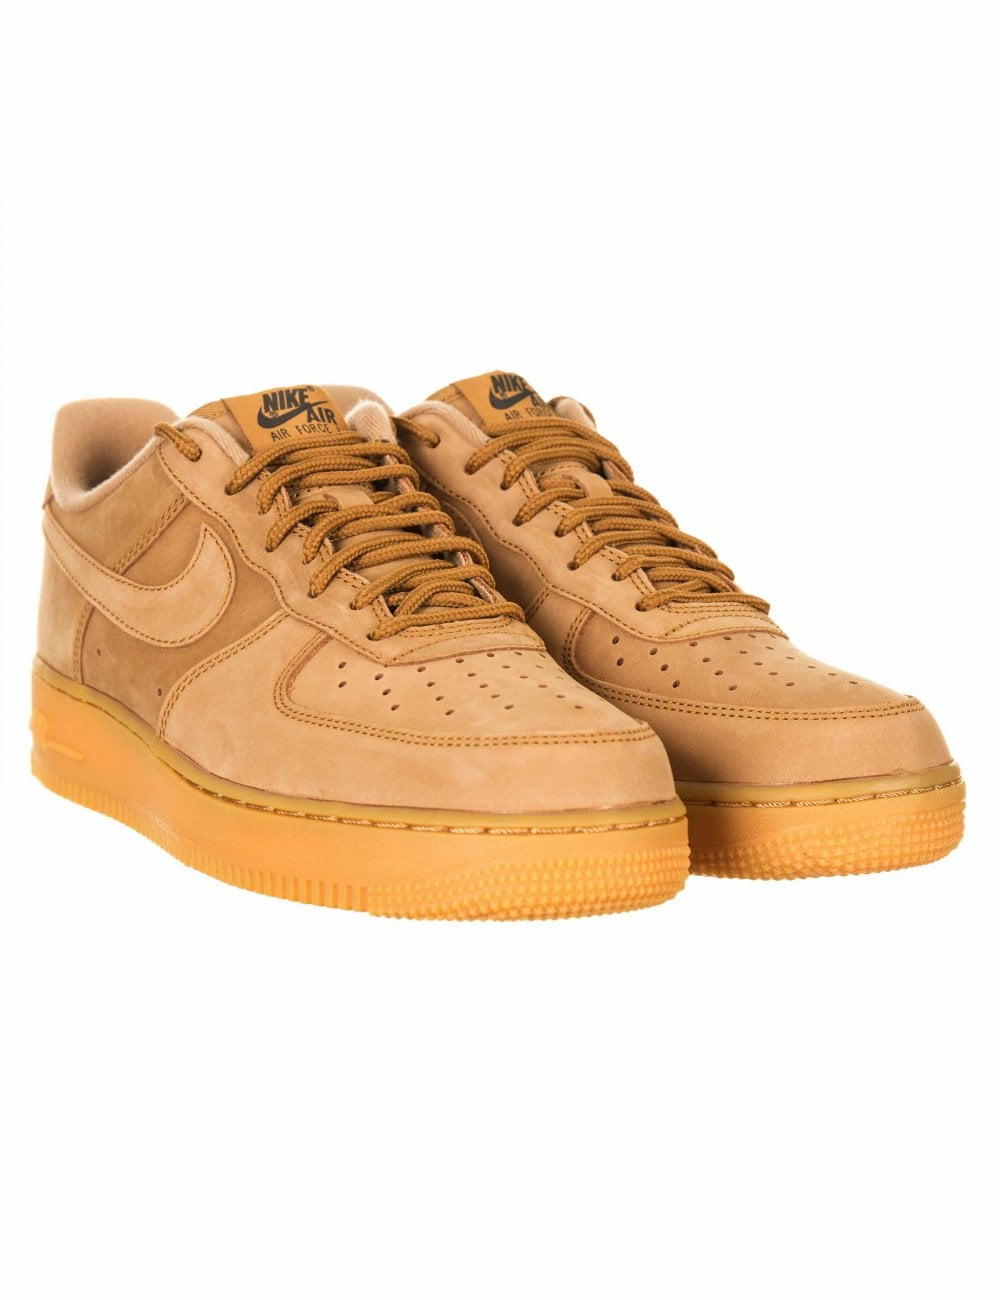 newest 8635b 264d7 Nike Air Force 1 07 WB Trainers - Wheat